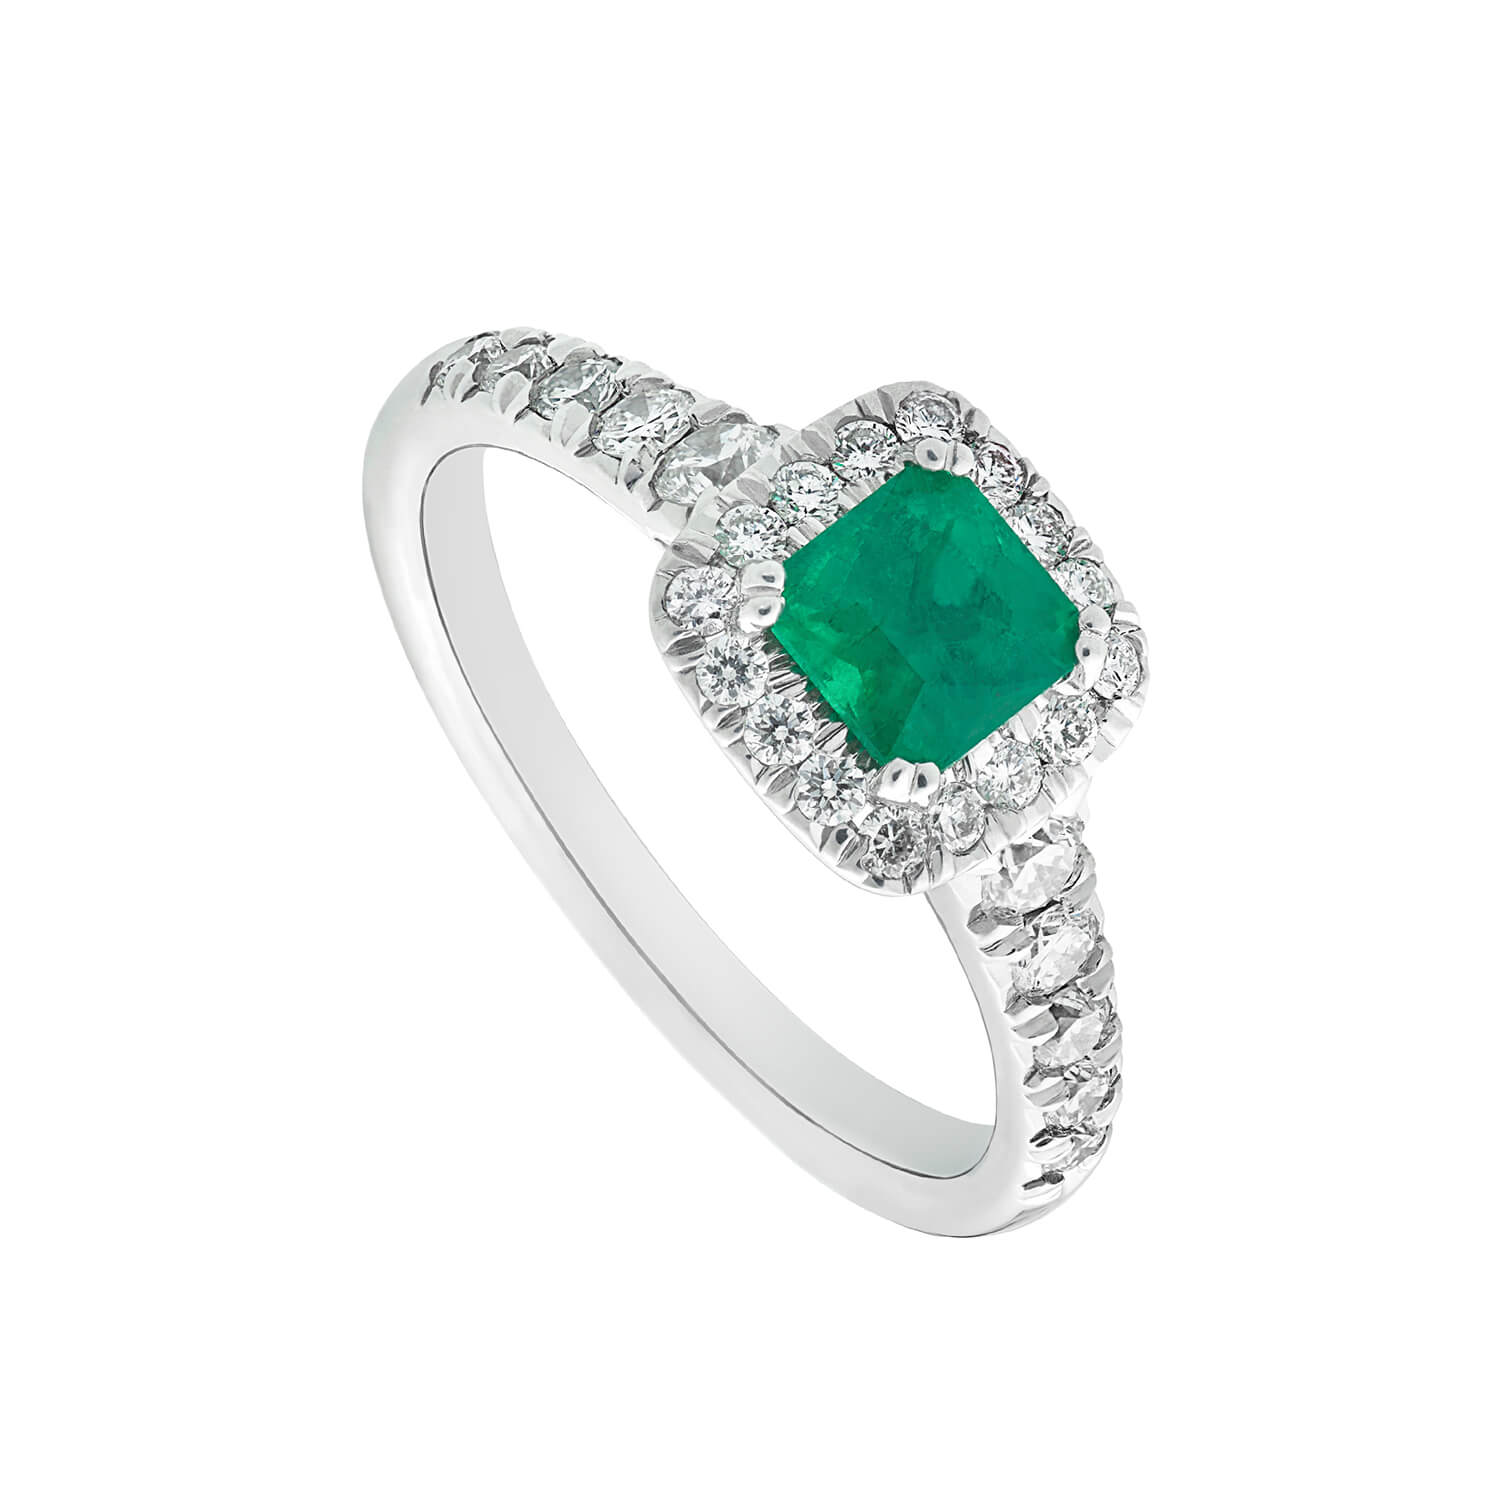 18ct white gold emerald and 0.50 carat diamond cluster ring